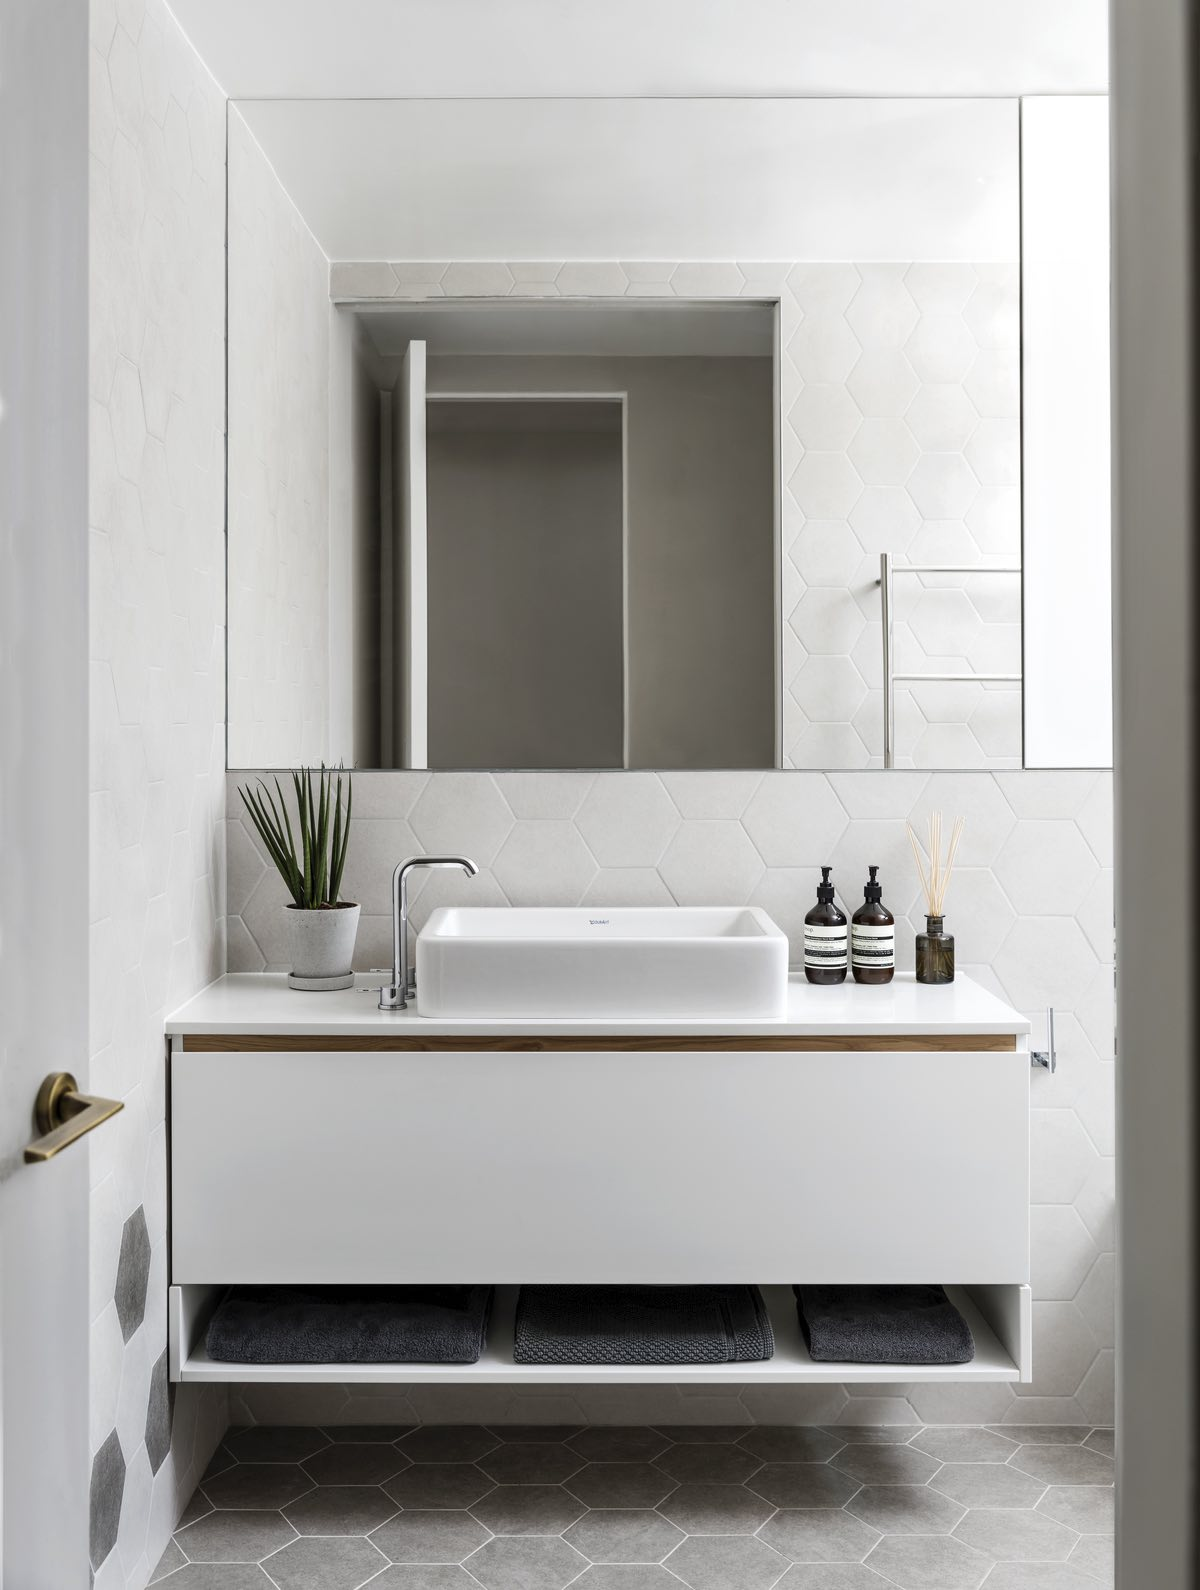 contemporary bathroom with white washing basin and mirror